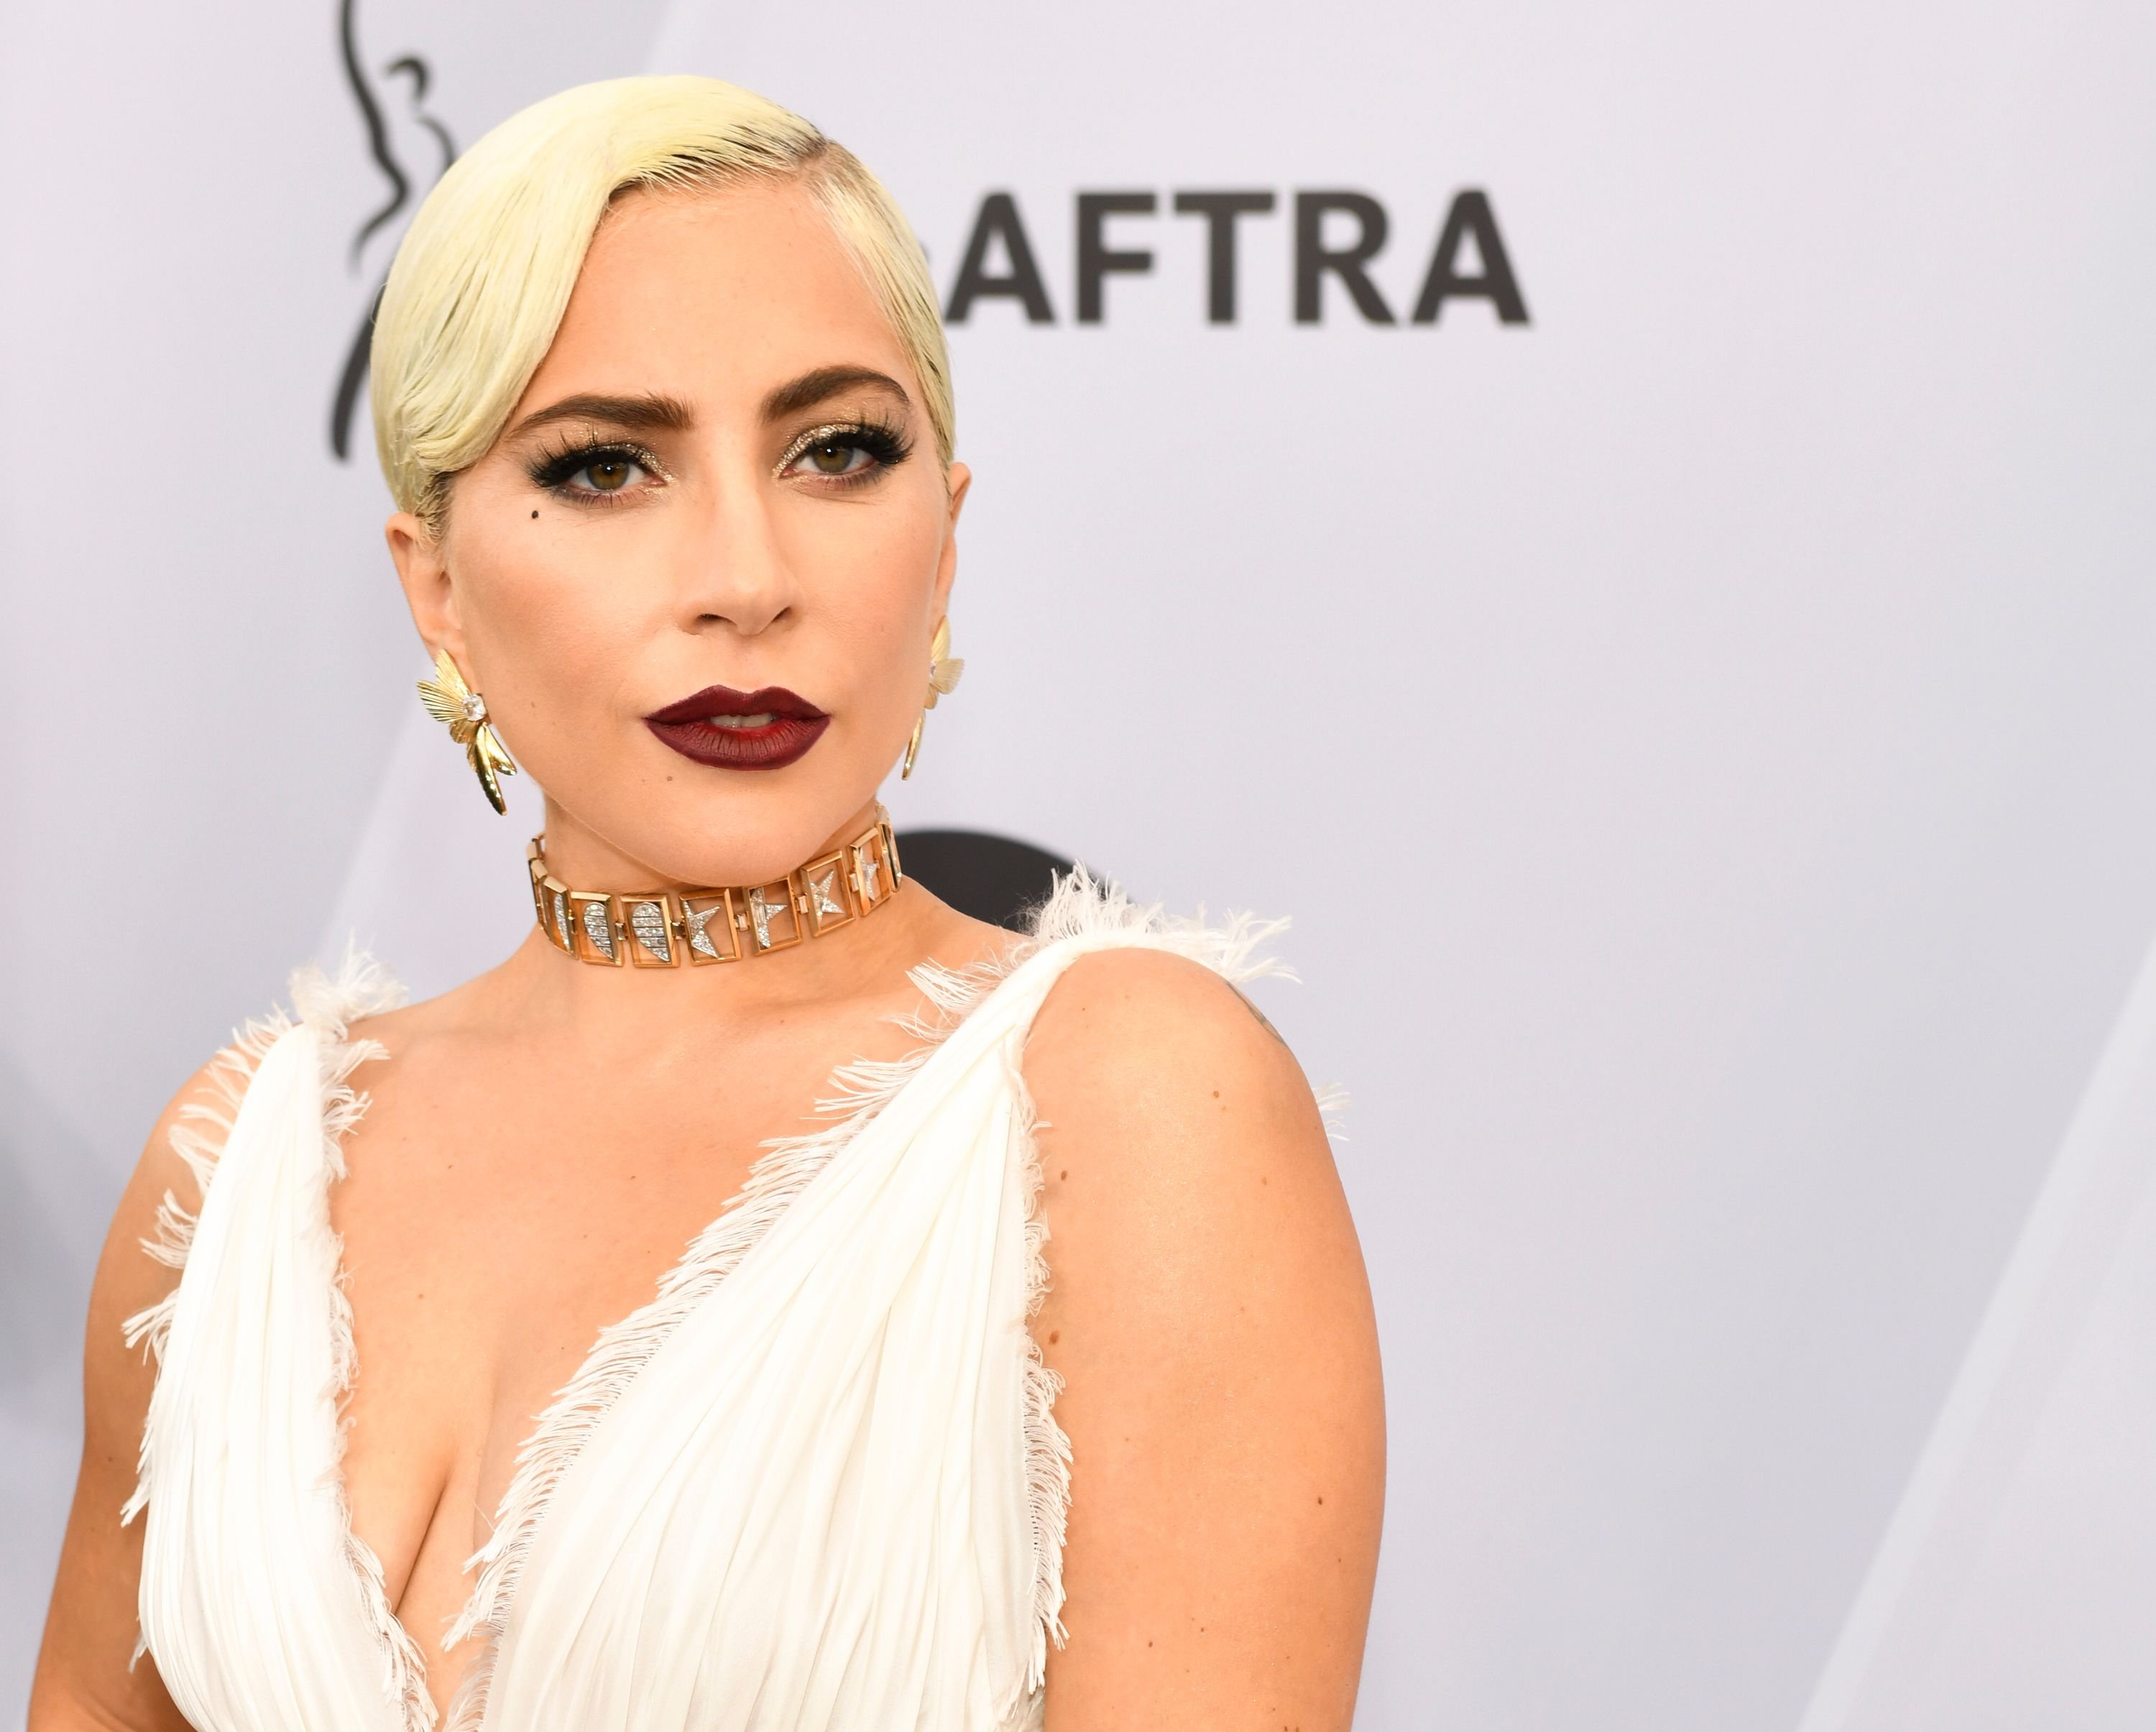 Lady Gaga at the 25th Annual Screen Actors Guild Awards at The Shrine Auditorium on January 27, 2019 in Los Angeles, California. | Photo: Getty Images